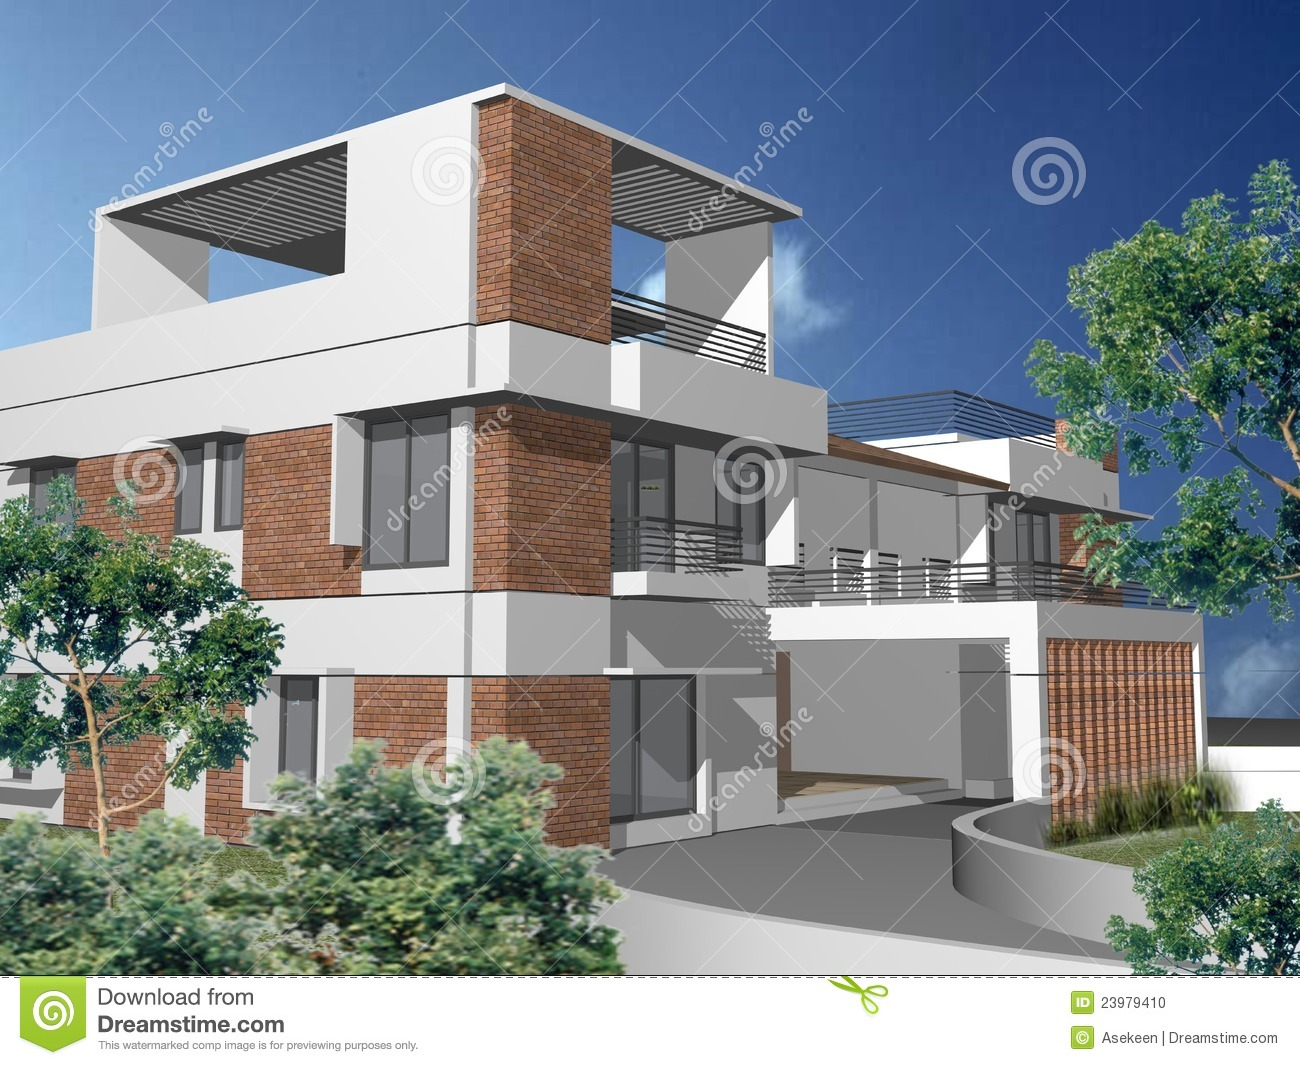 3d duplex homes image for Duplex home builders